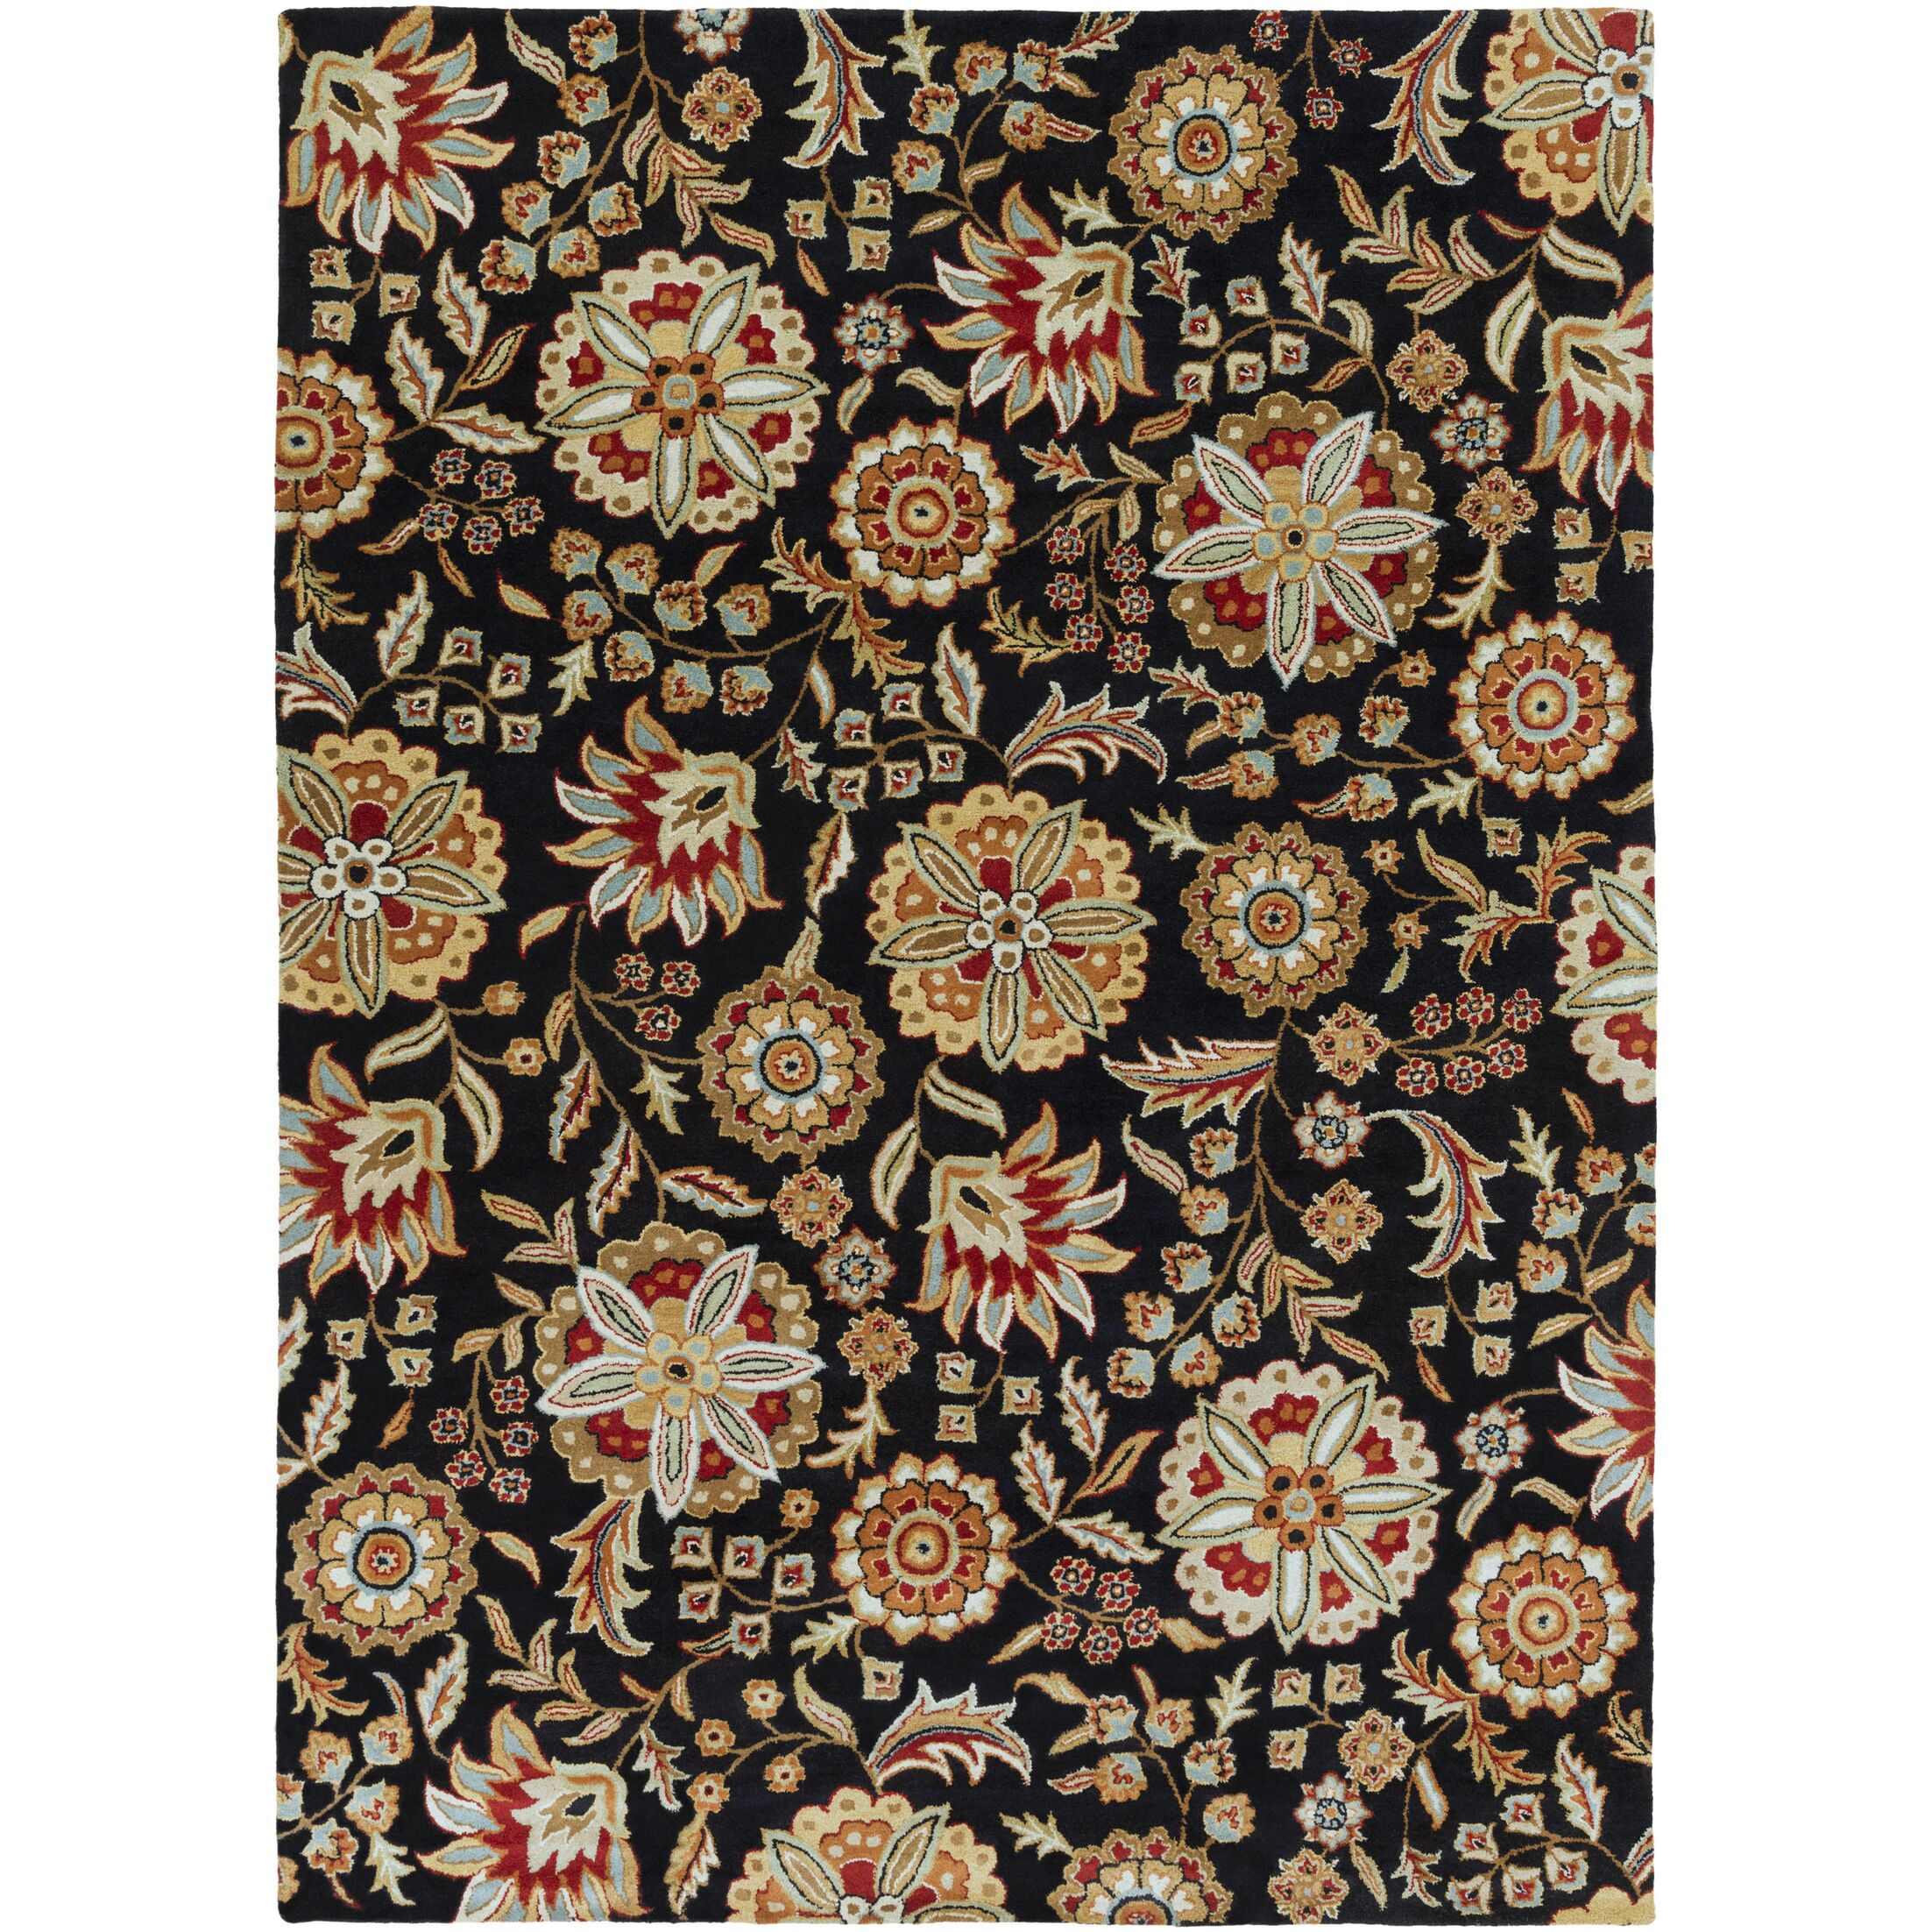 Marianna Hand-Tufted Area Rug Rug Size: Square 9'9